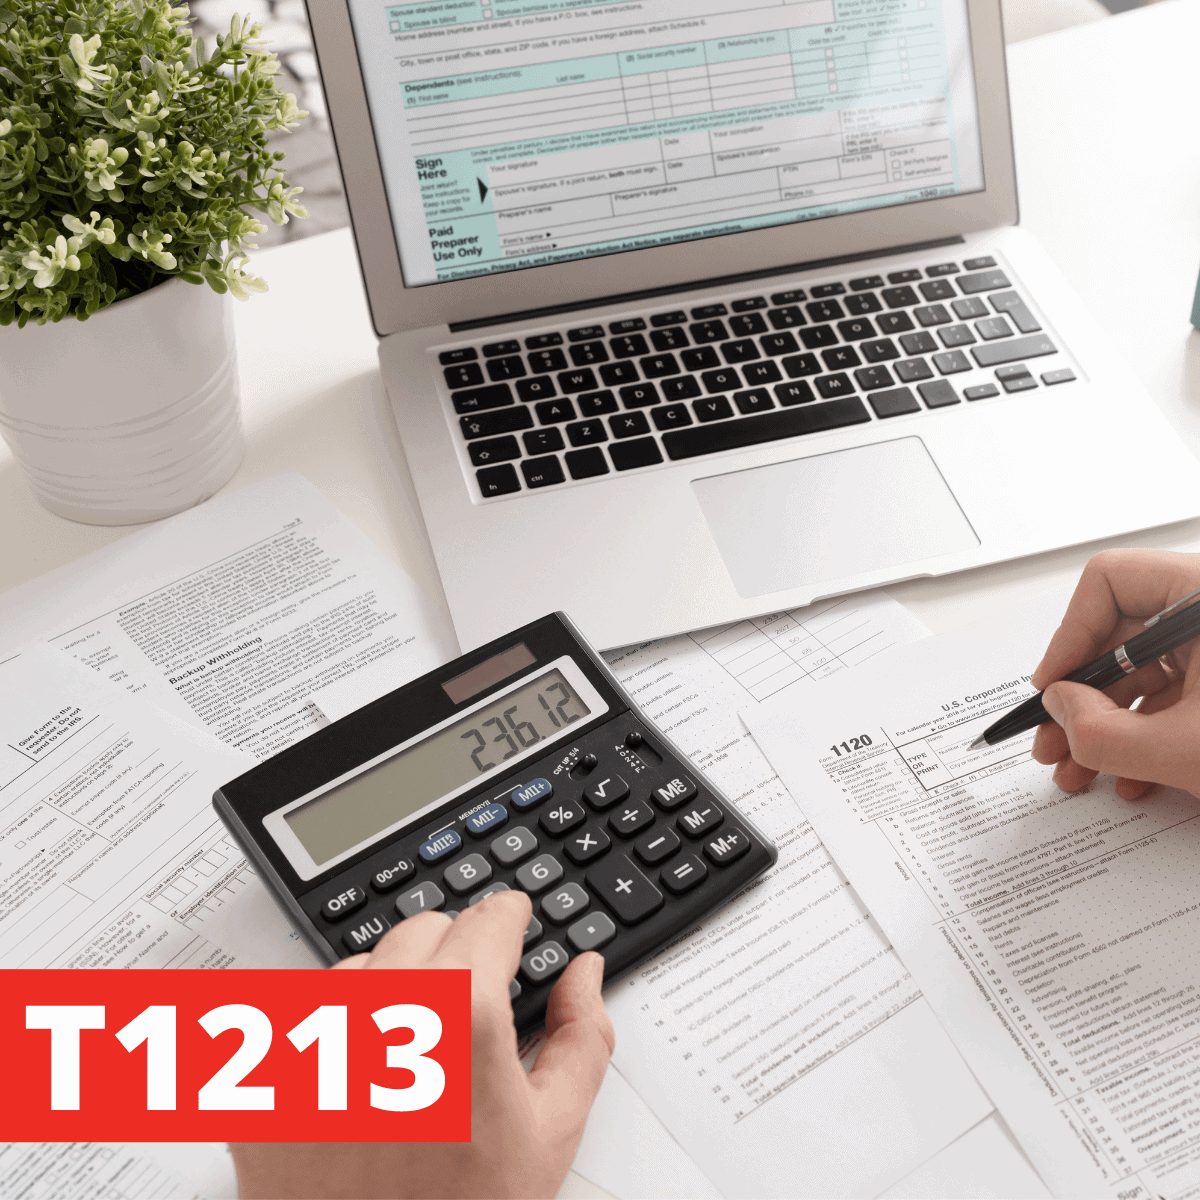 The T1213 Form Explained